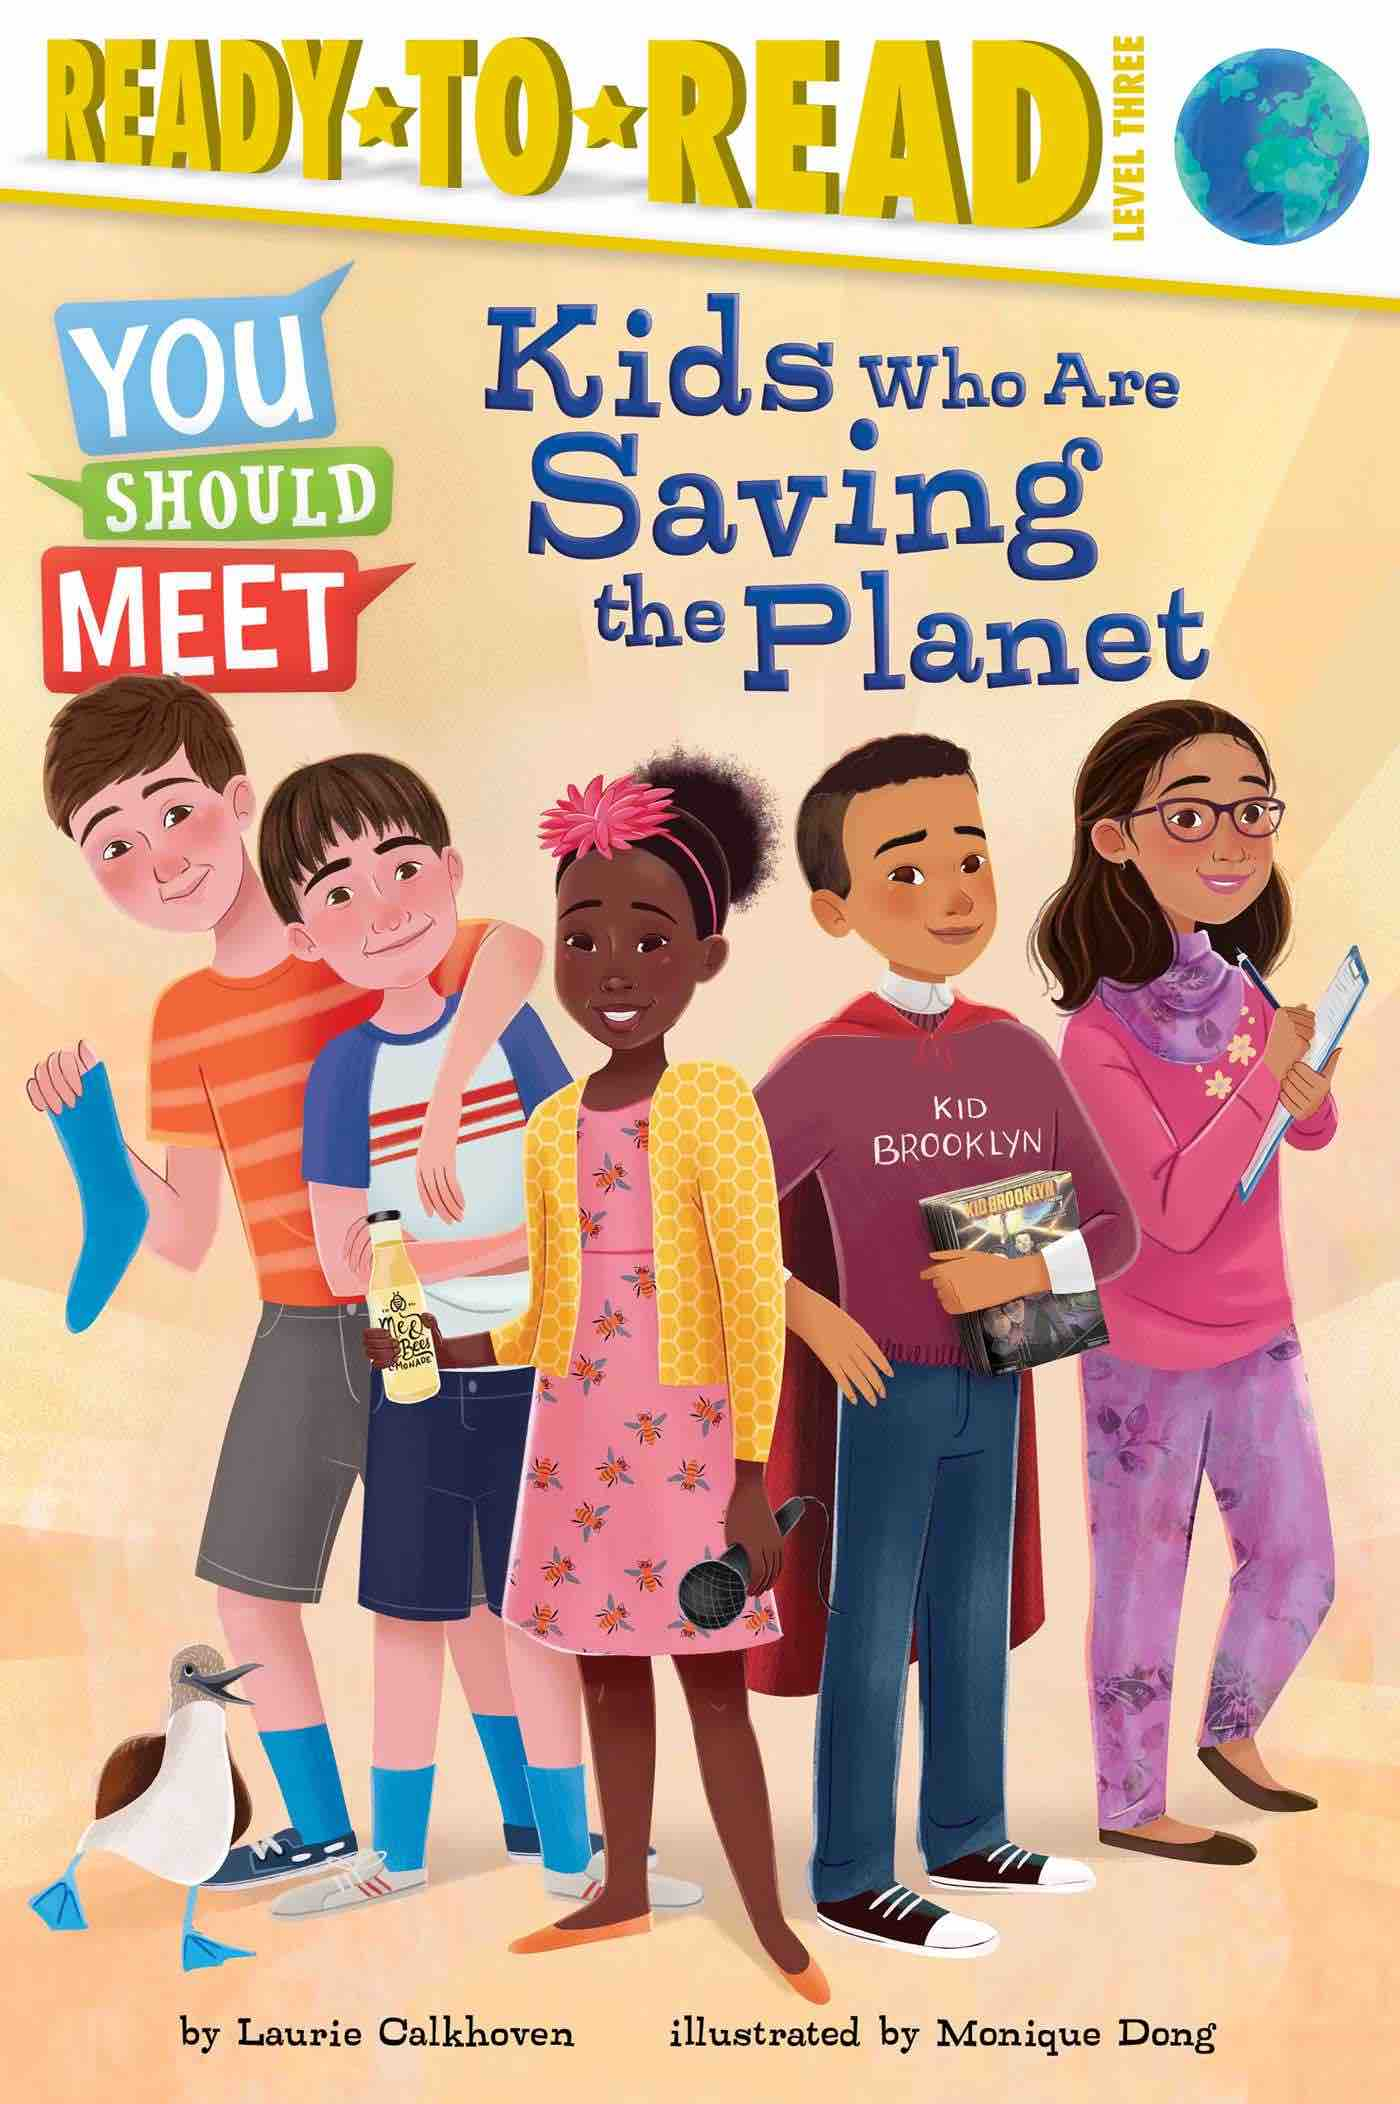 Earth Day Kids who are saving the planet